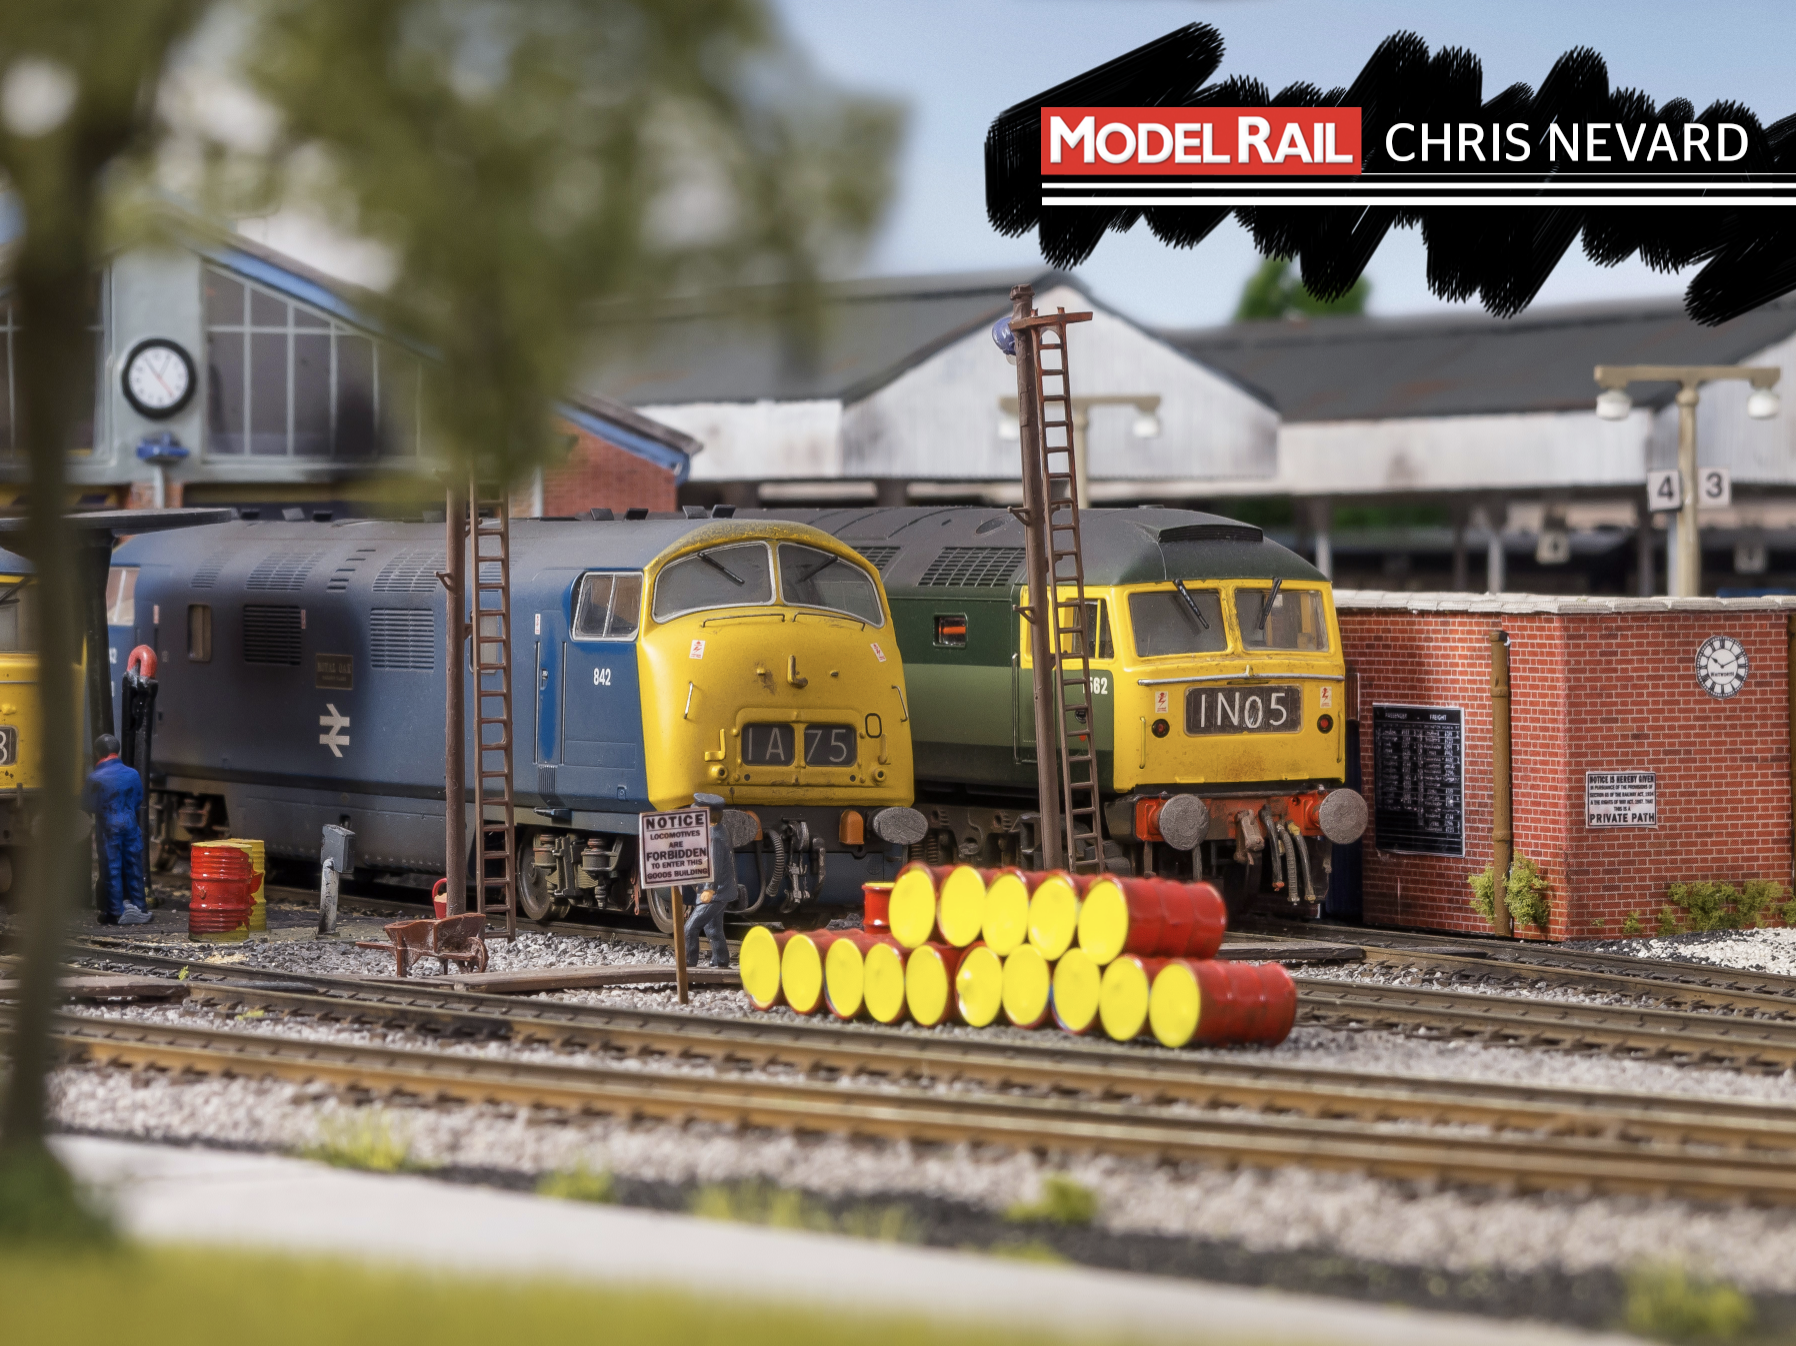 The BR Blue era is an homage to Paul's days train spotting as a child. CHRIS NEVARD